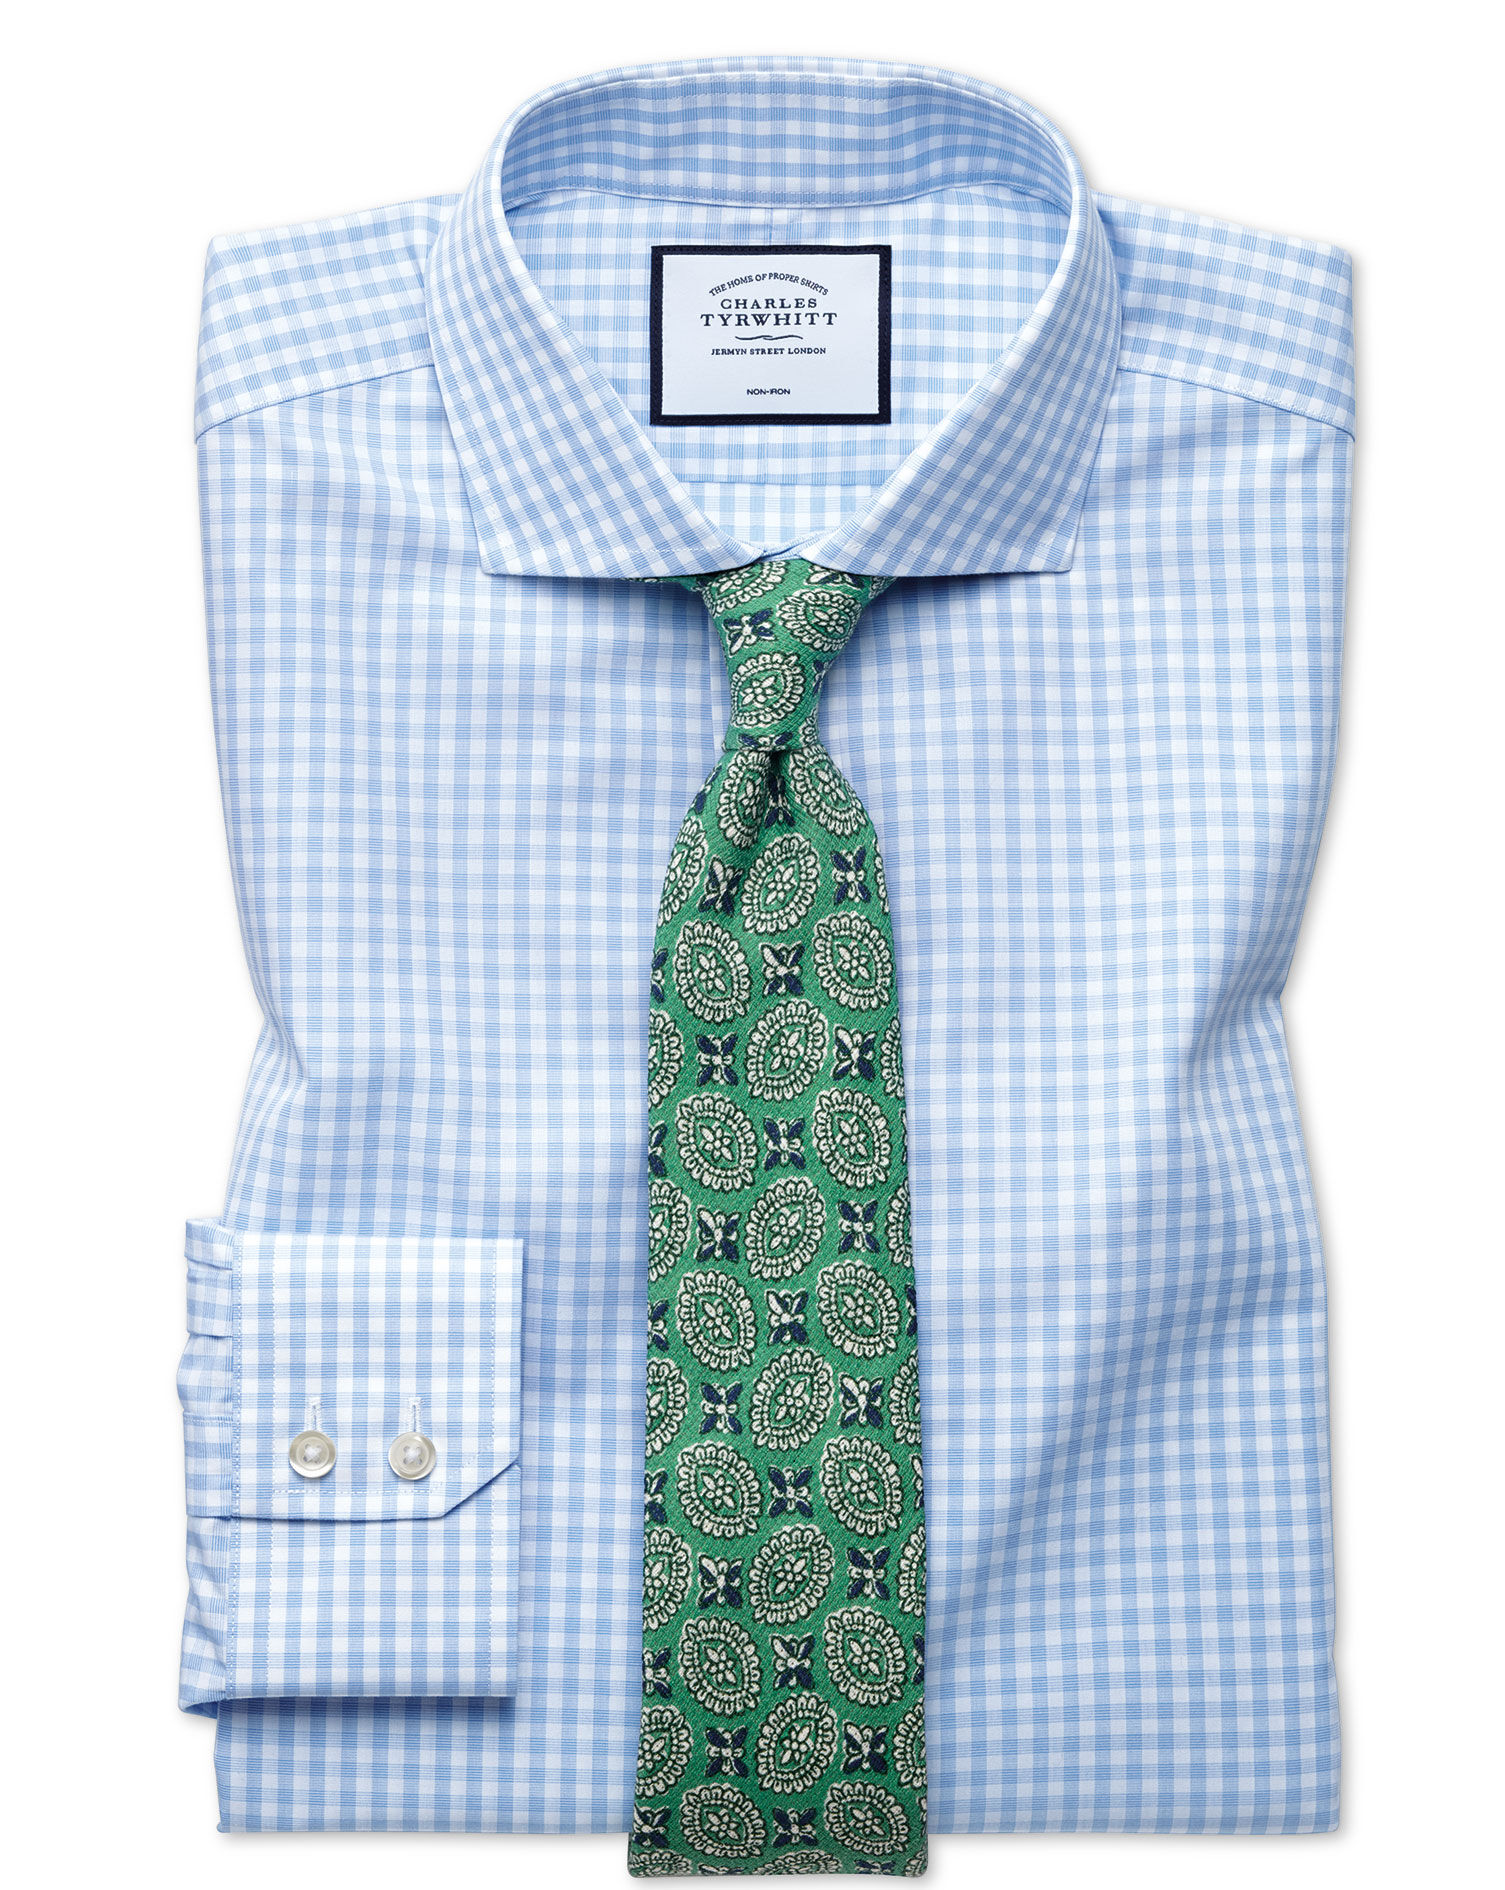 Extra Slim Fit Non-Iron Sky Blue Check Natural Cool Cotton Formal Shirt Single Cuff Size 16/34 by Ch